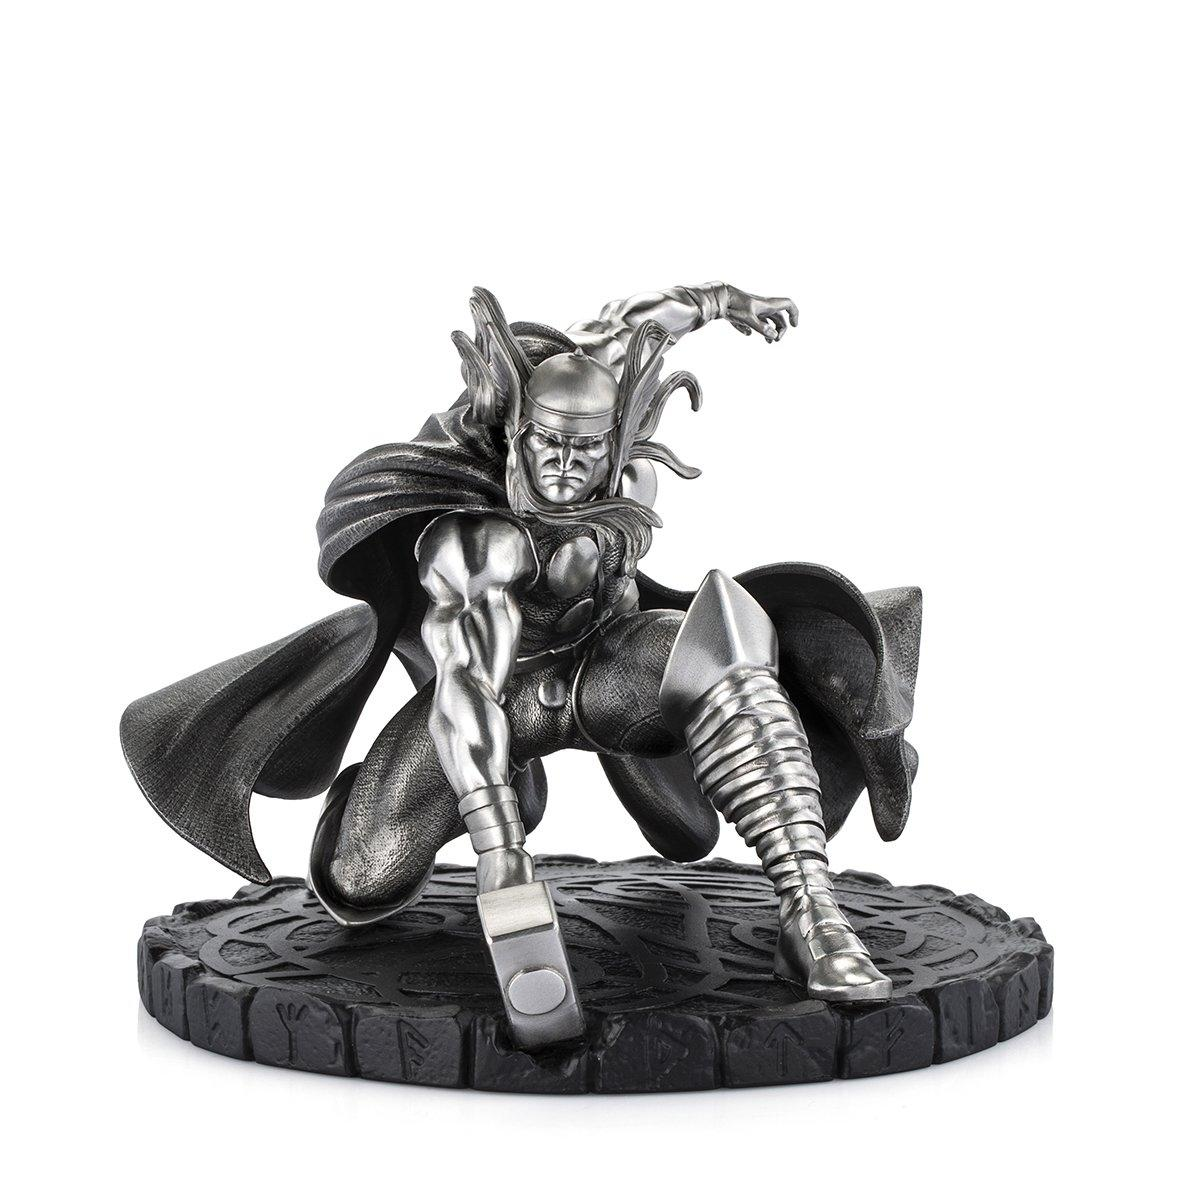 Limited Edition Thor God of Thunder Figurine